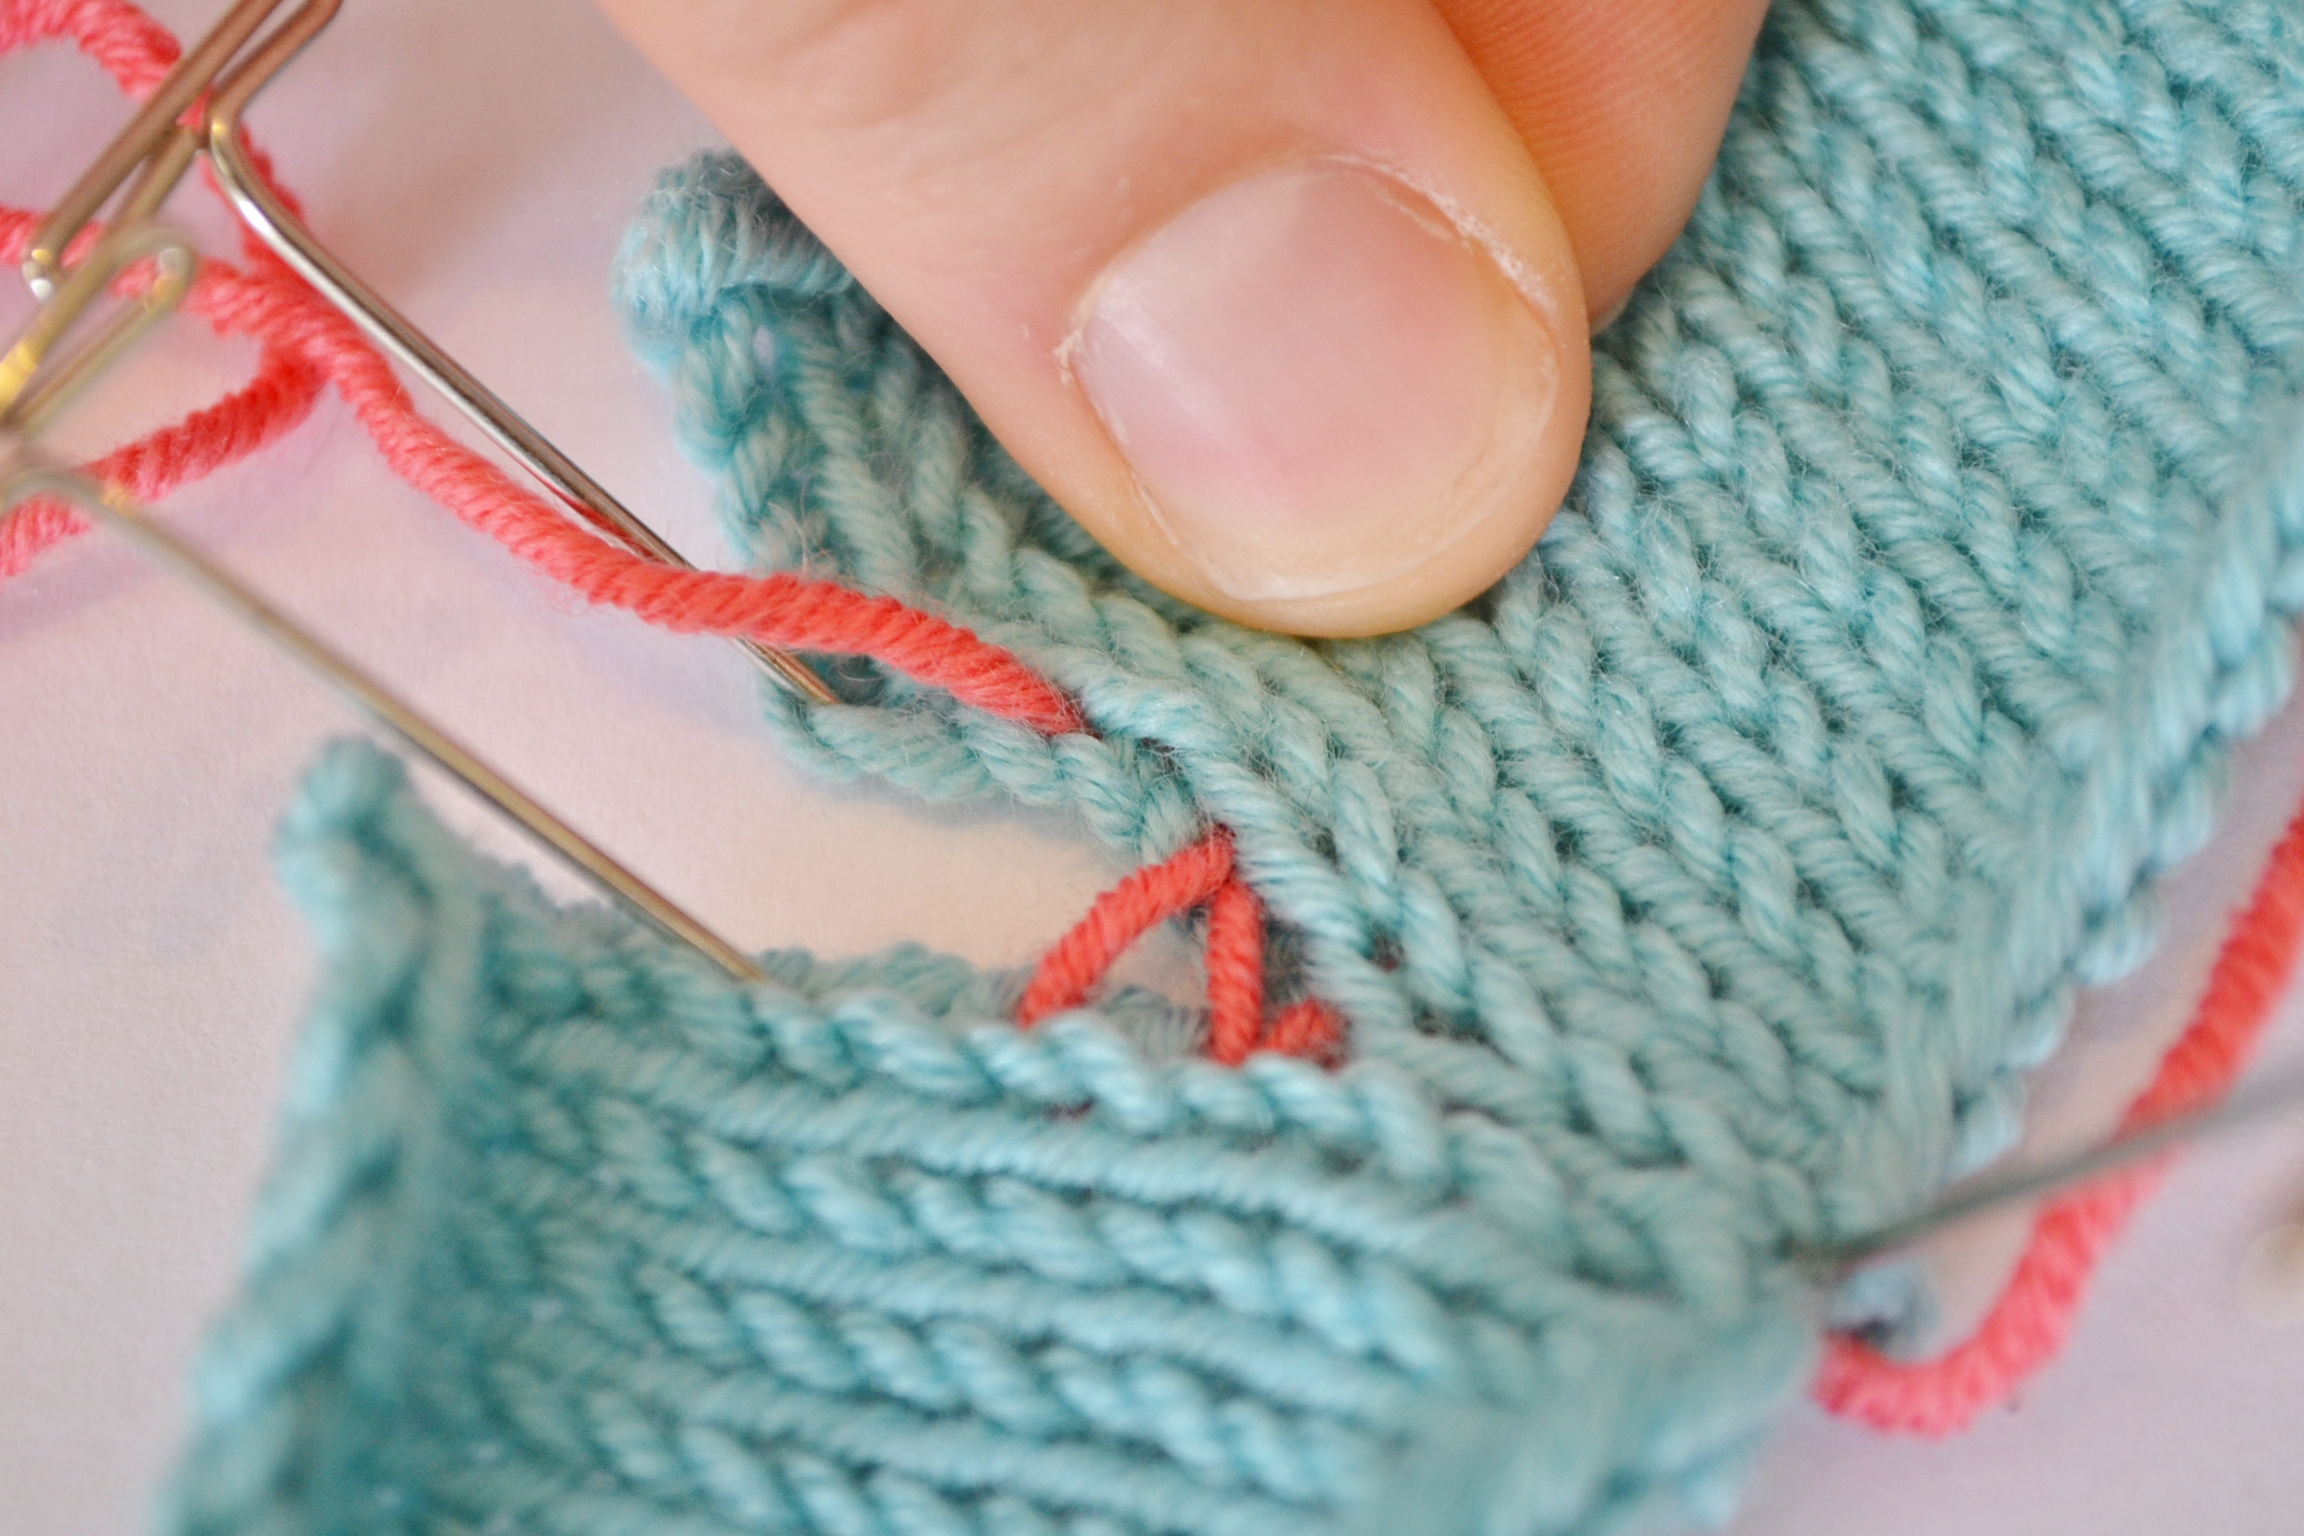 Knitting Joining Seams Mattress Stitch : How to Sew Invisible Vertical Seams in Knitting with Mattress Stitch - aknitica